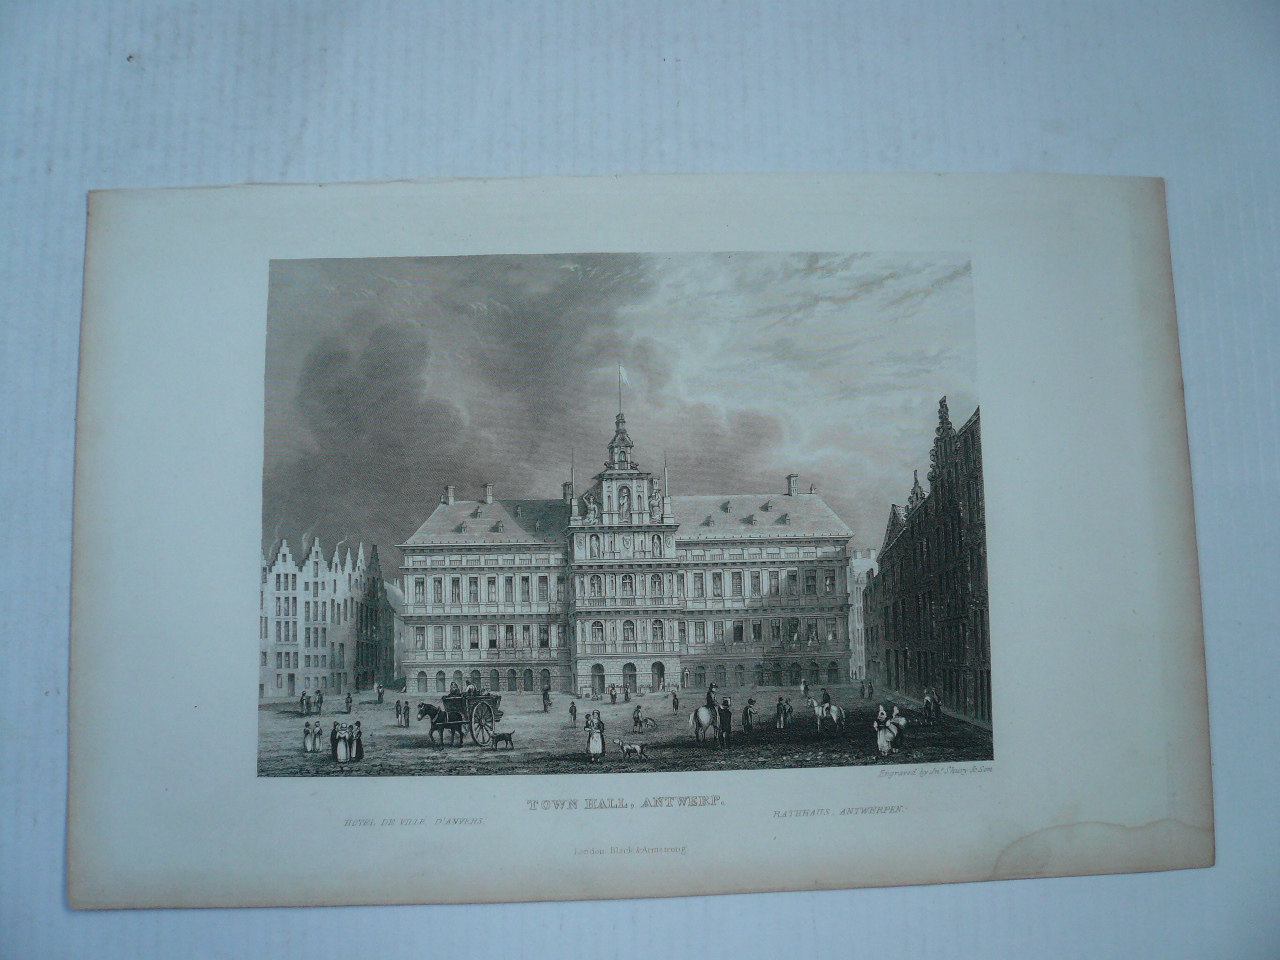 Antwerp, anno 1840, steelengraving, Black & Armstrong